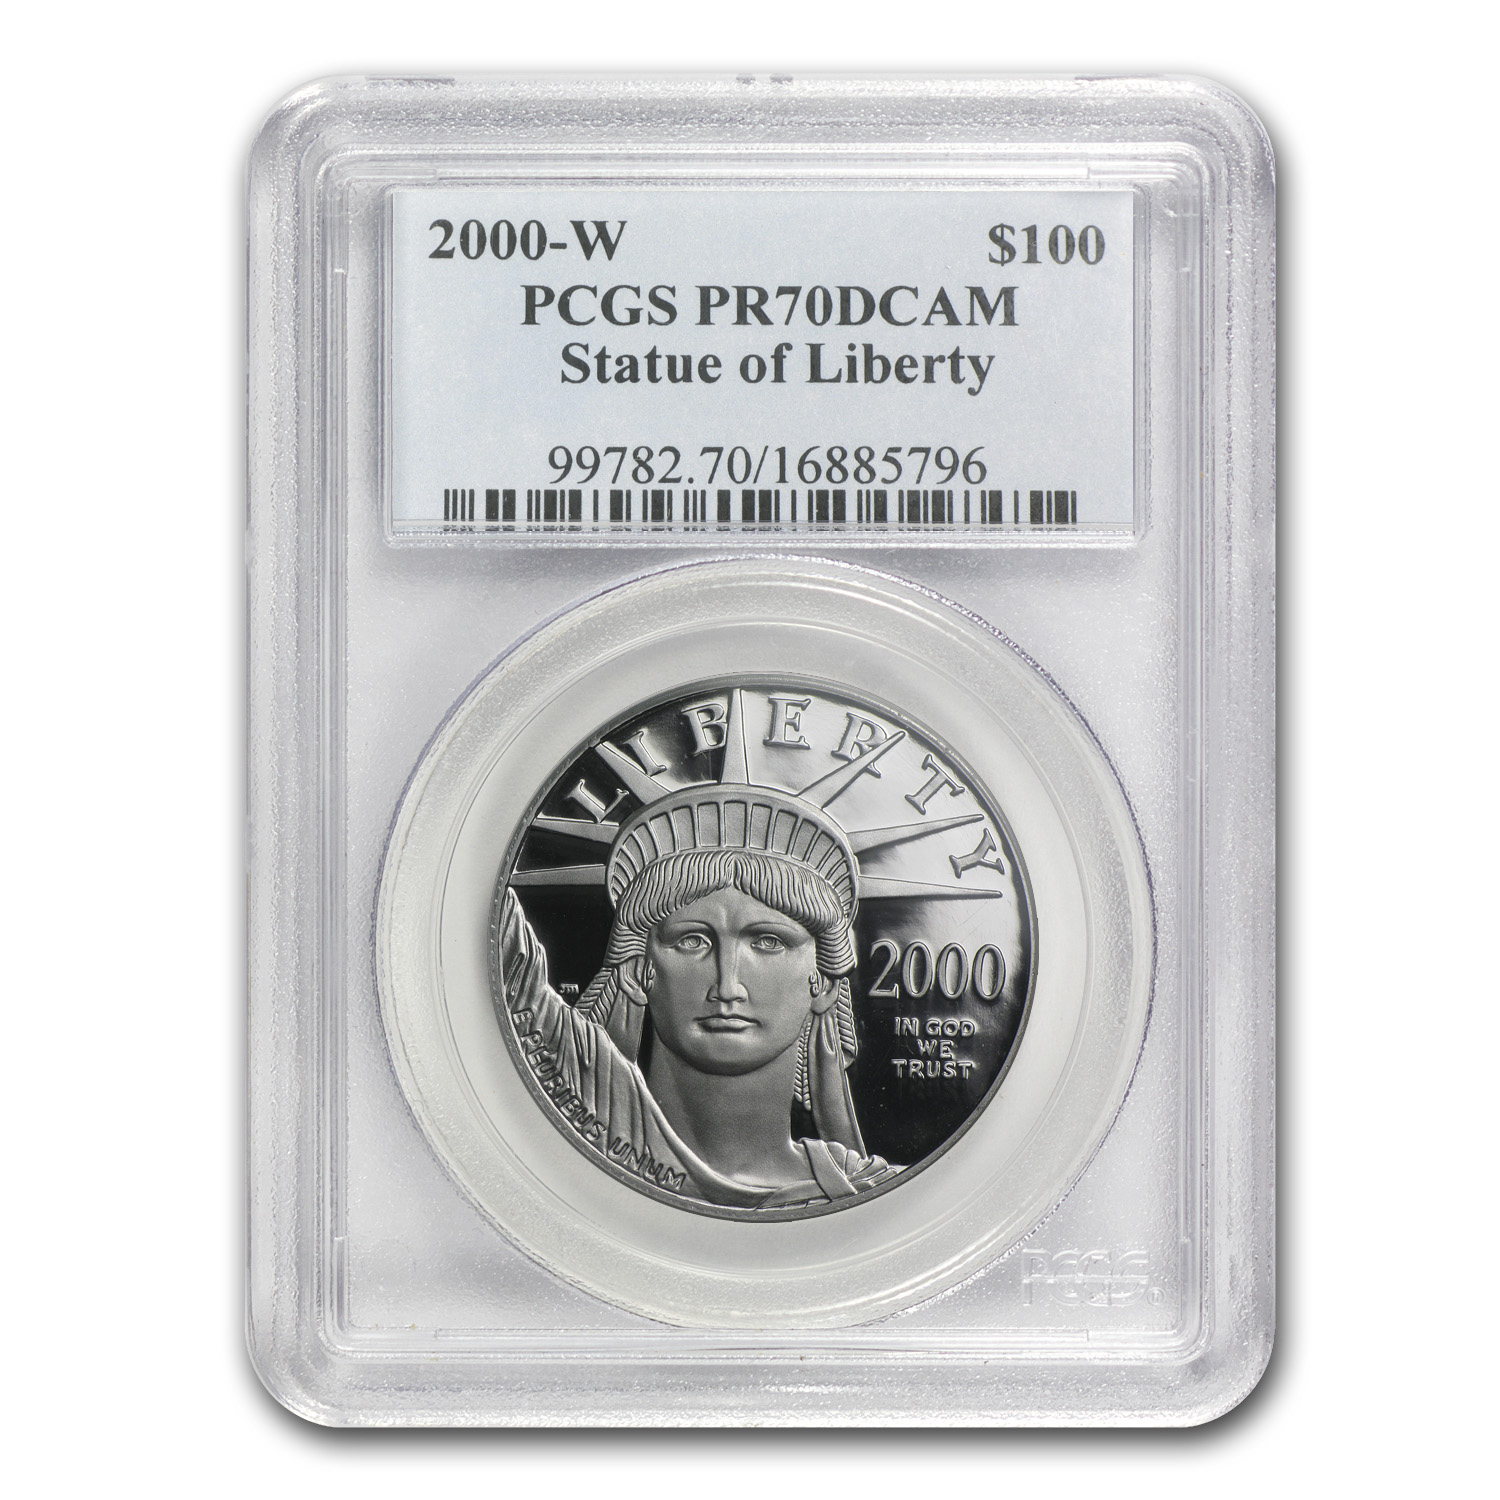 2000-W 4-Coin Proof Platinum American Eagle Set PR-70 PCGS